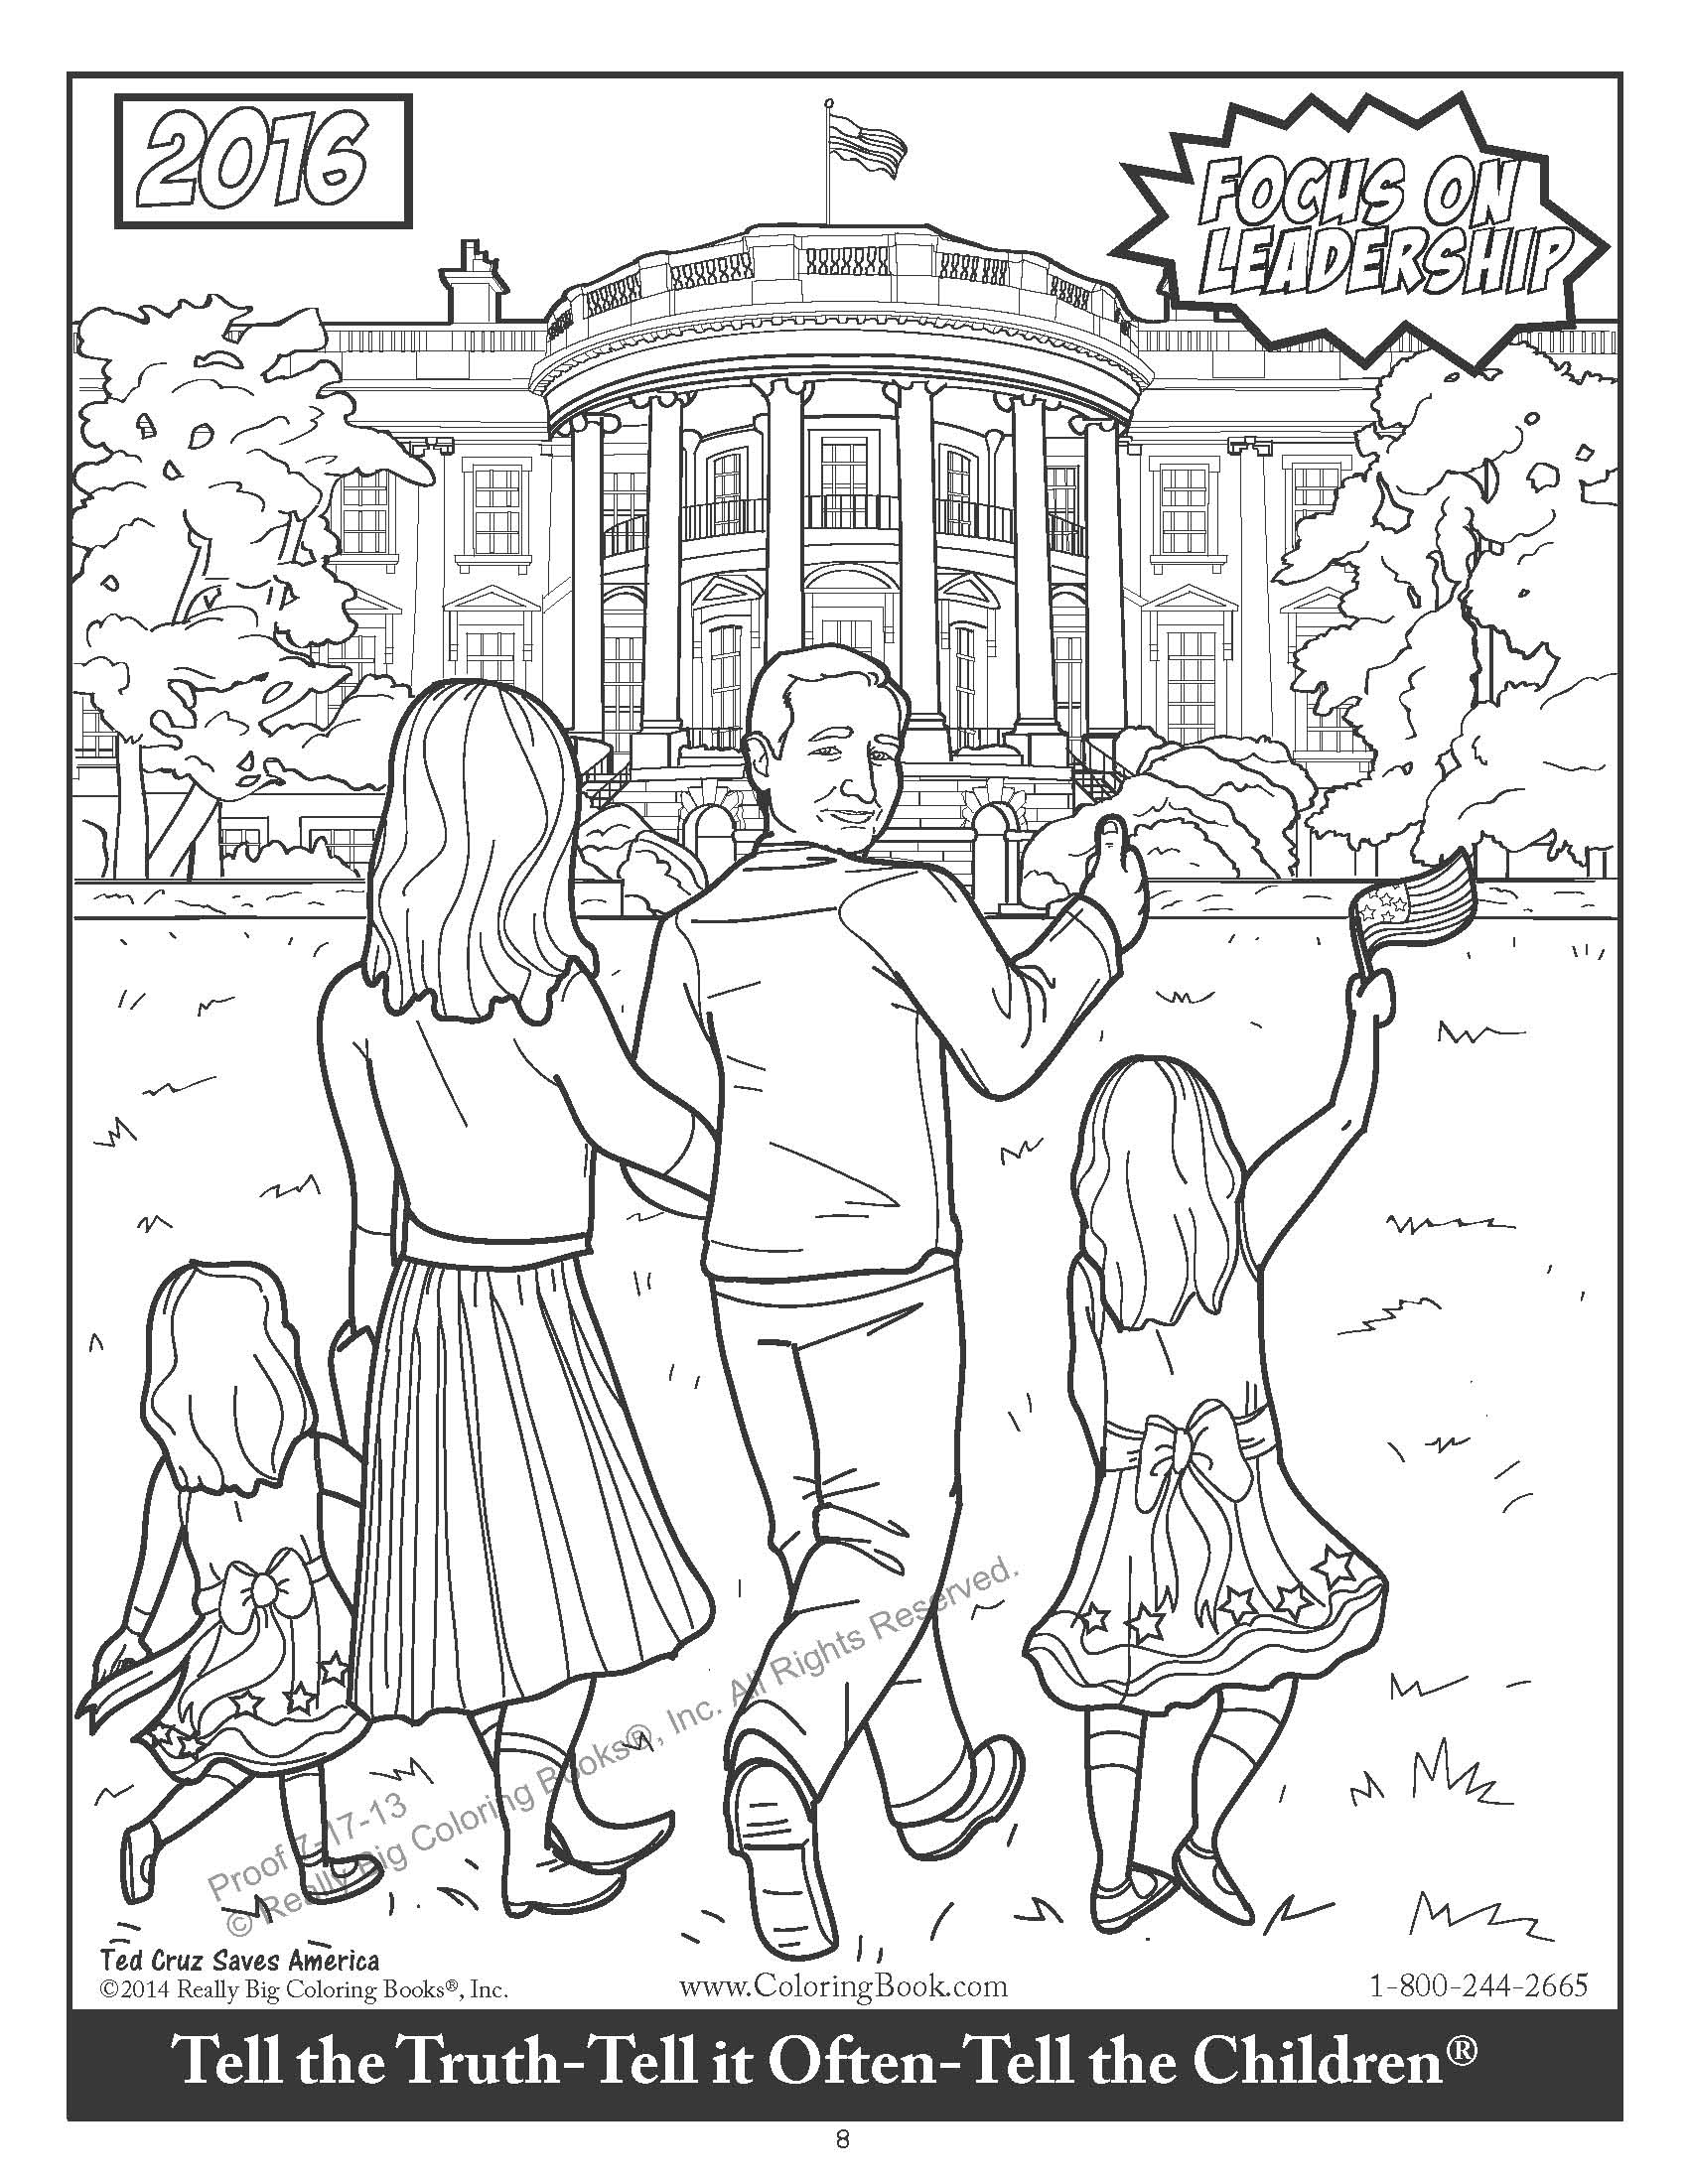 Ted Cruz Saves America Released by ColoringBook Back by